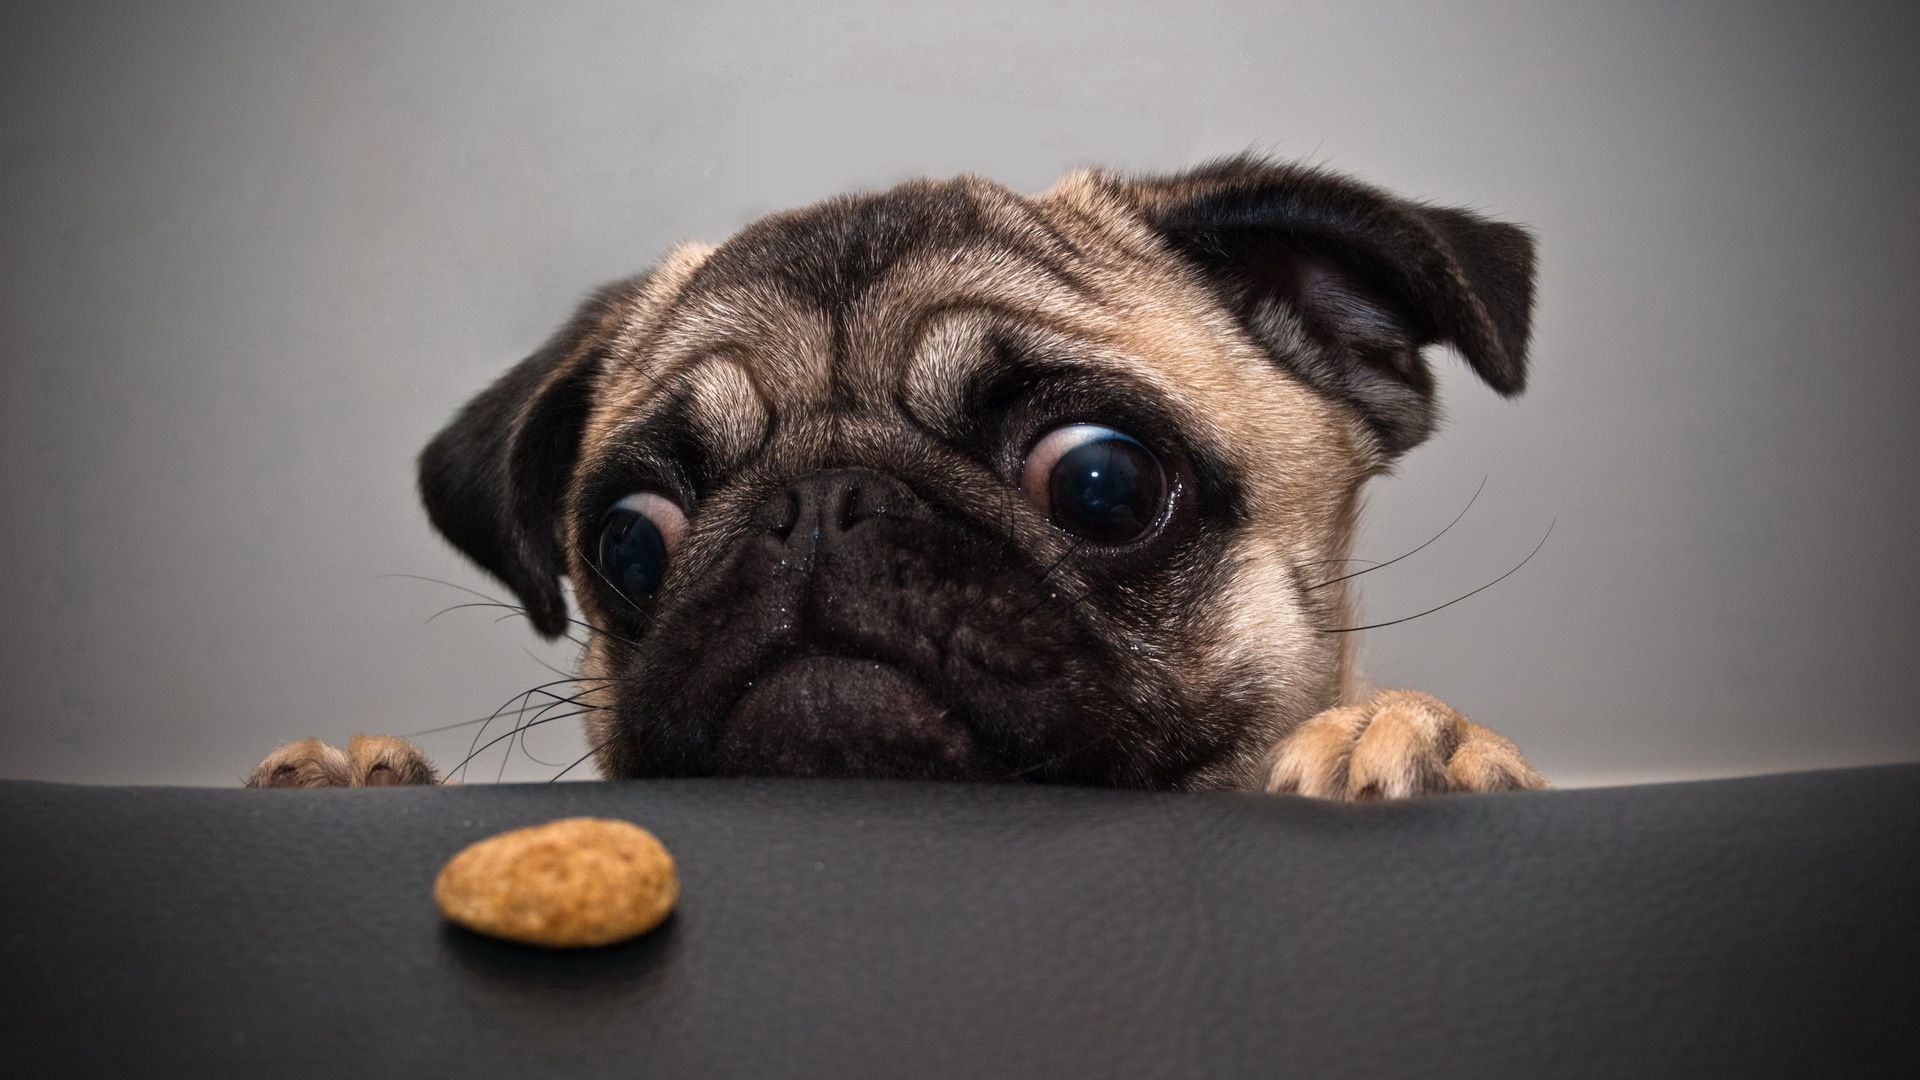 113440 download wallpaper Animals, Pug, Dog, Muzzle, Sadness, Sorrow, Cookies screensavers and pictures for free